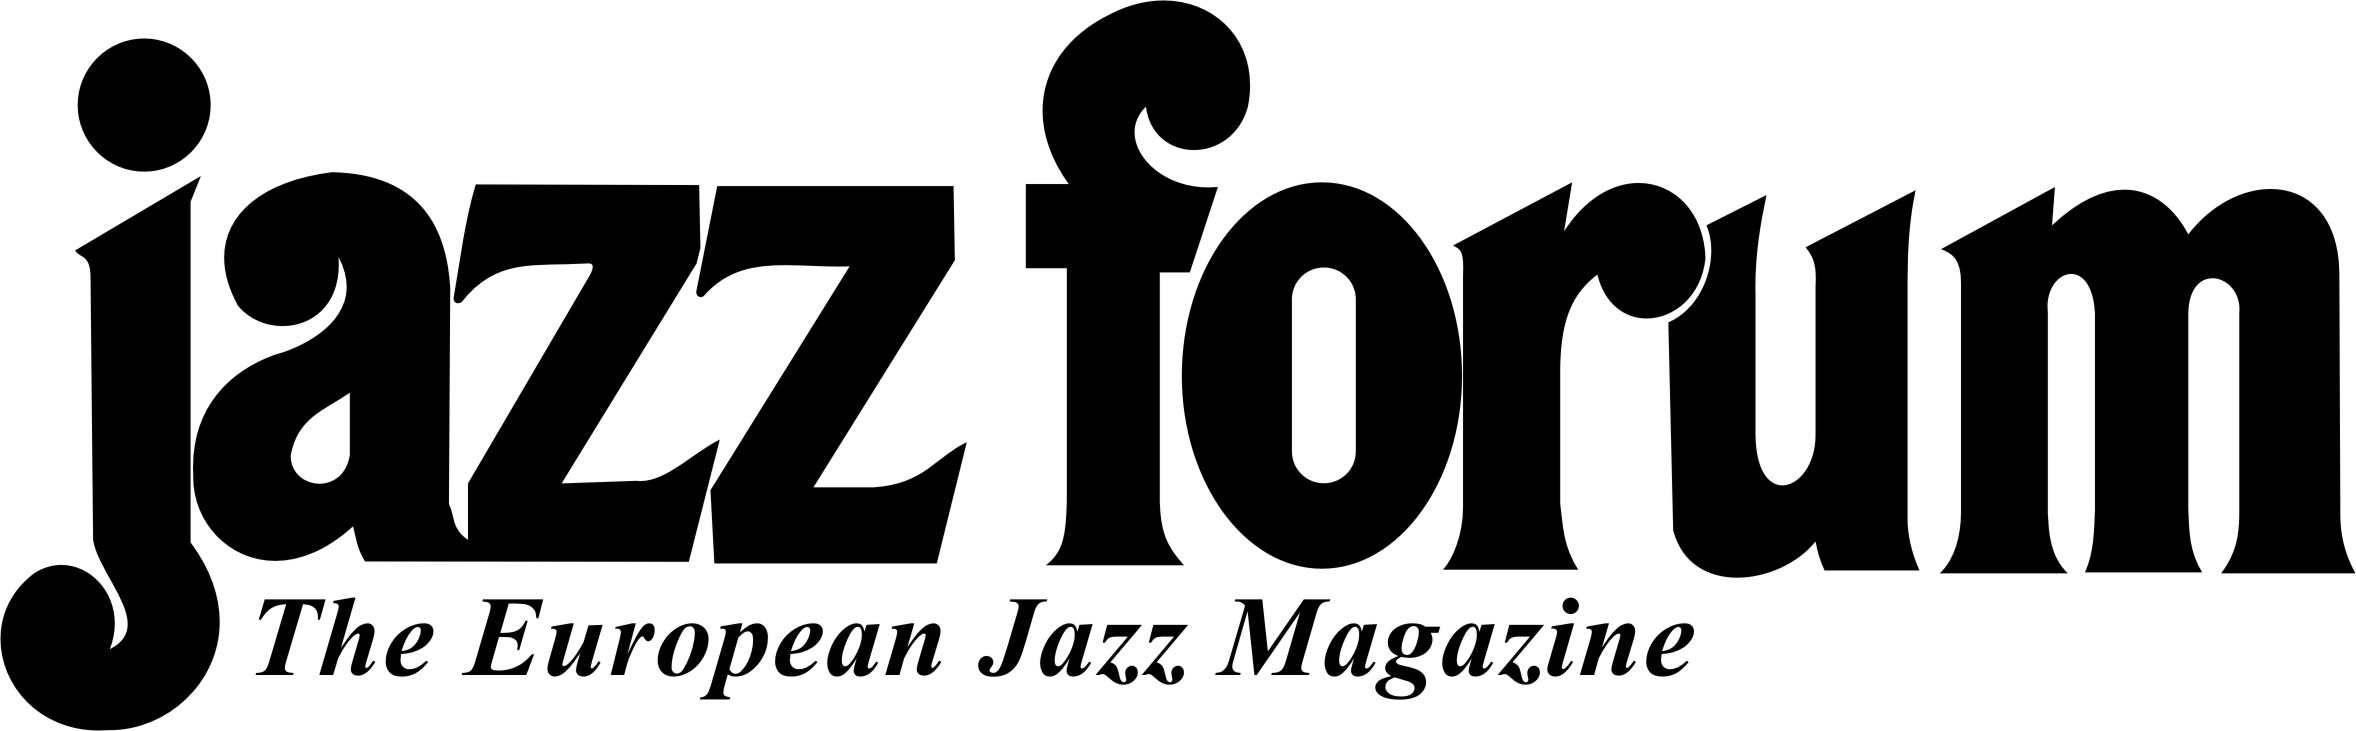 Jazz Forum logo1.jpg